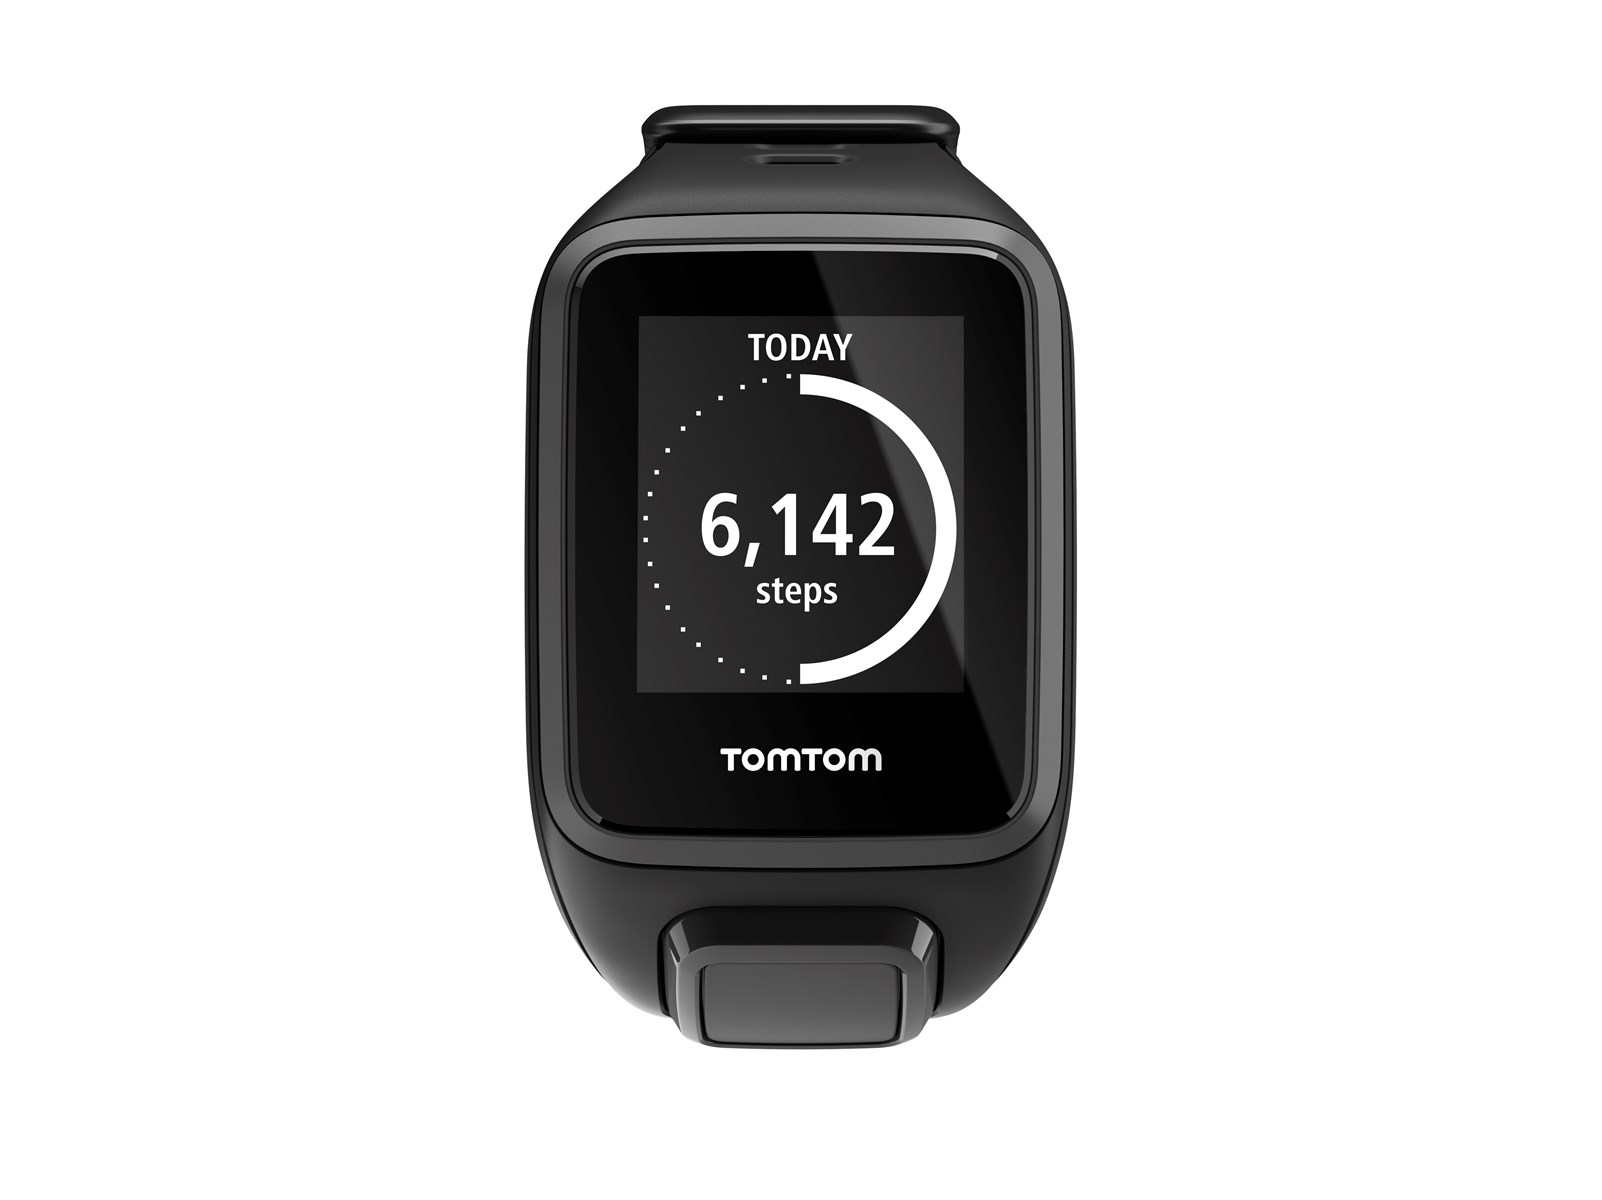 tomtom gps watch instructions